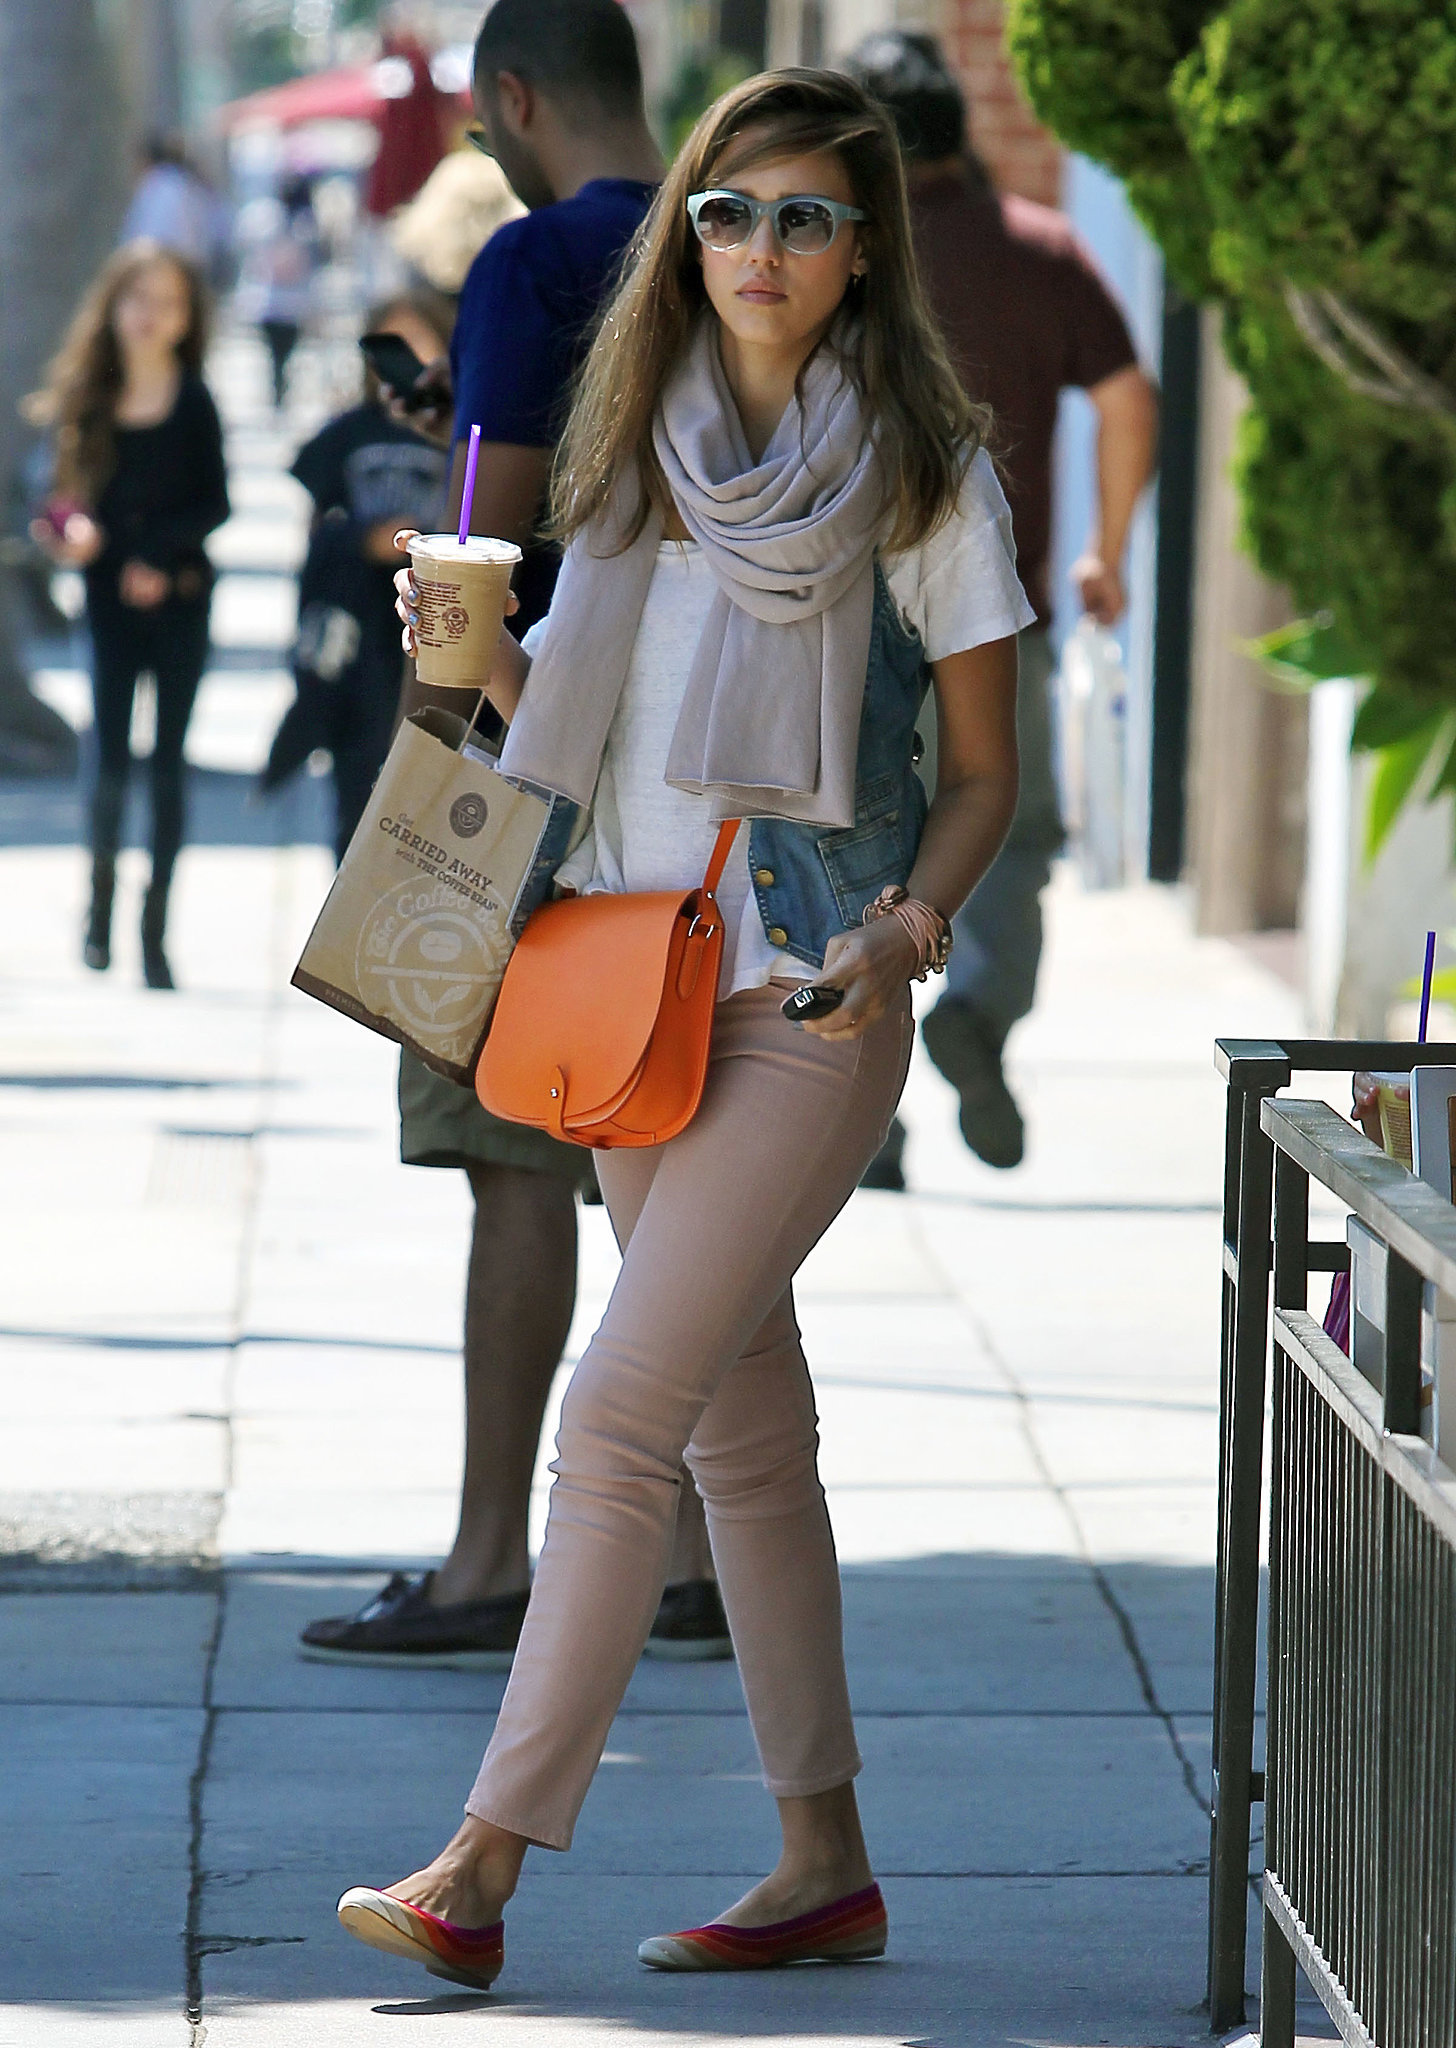 Jessica Alba injected a pop of pizzazz into her street style — a denim vest and rose-colored ankle jeans by J Brand — with a bright orange Ralph Lauren crossbody bag, multicolor Ferragamo flats, and blue Elizabeth and James shades while enjoying an iced coffee in Beverly Hills.